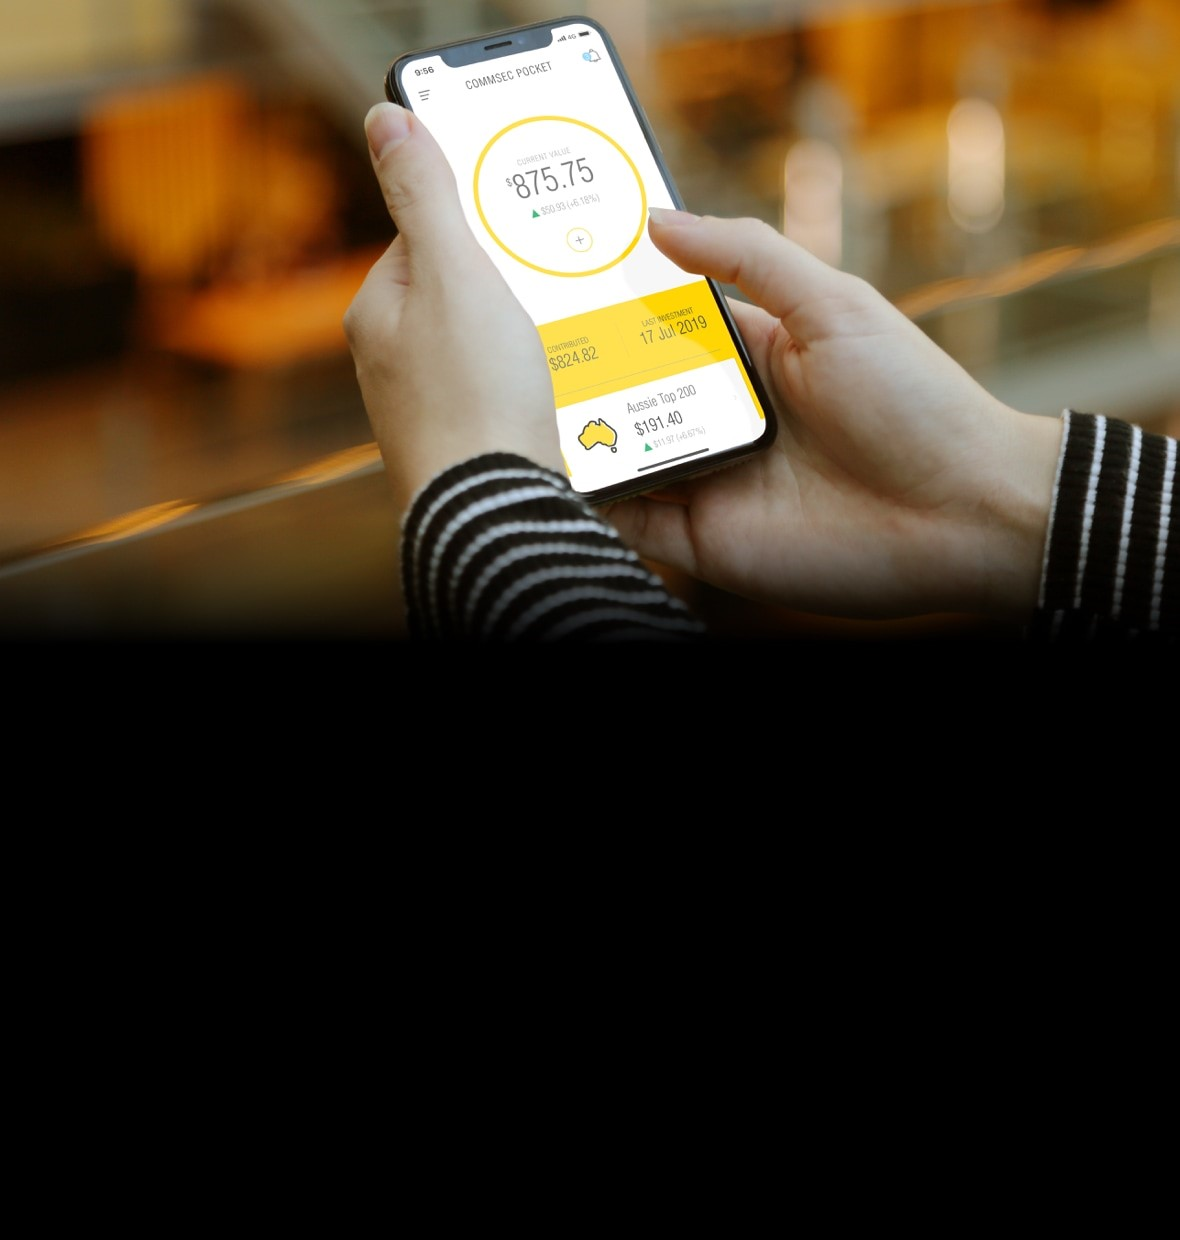 CommSec Pocket app